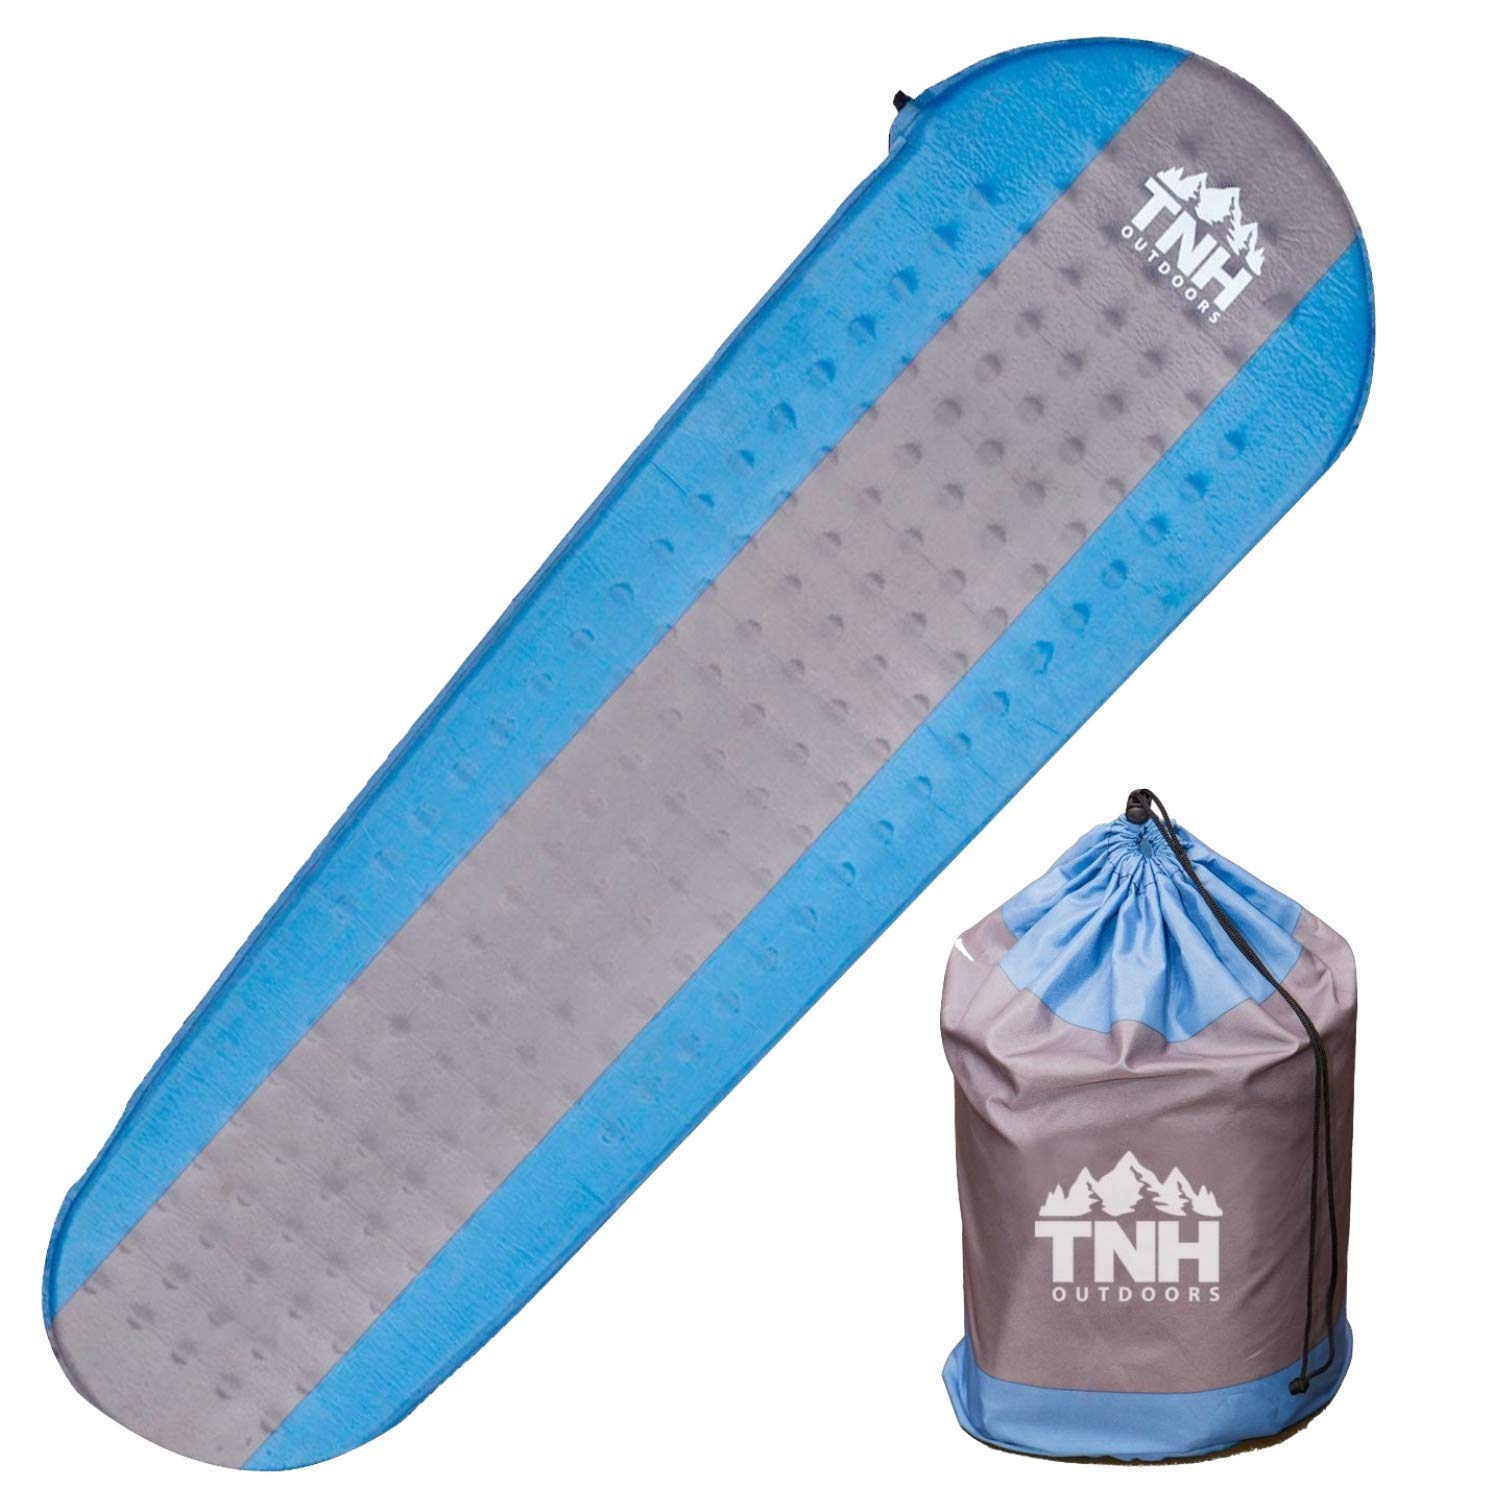 TNH Outdoors Premium Self Inflating Sleeping Pad Lightweight Foam Padding and Superior Insulation Great for Hiking & Camping Thick Outer Skin by TNH Outdoors